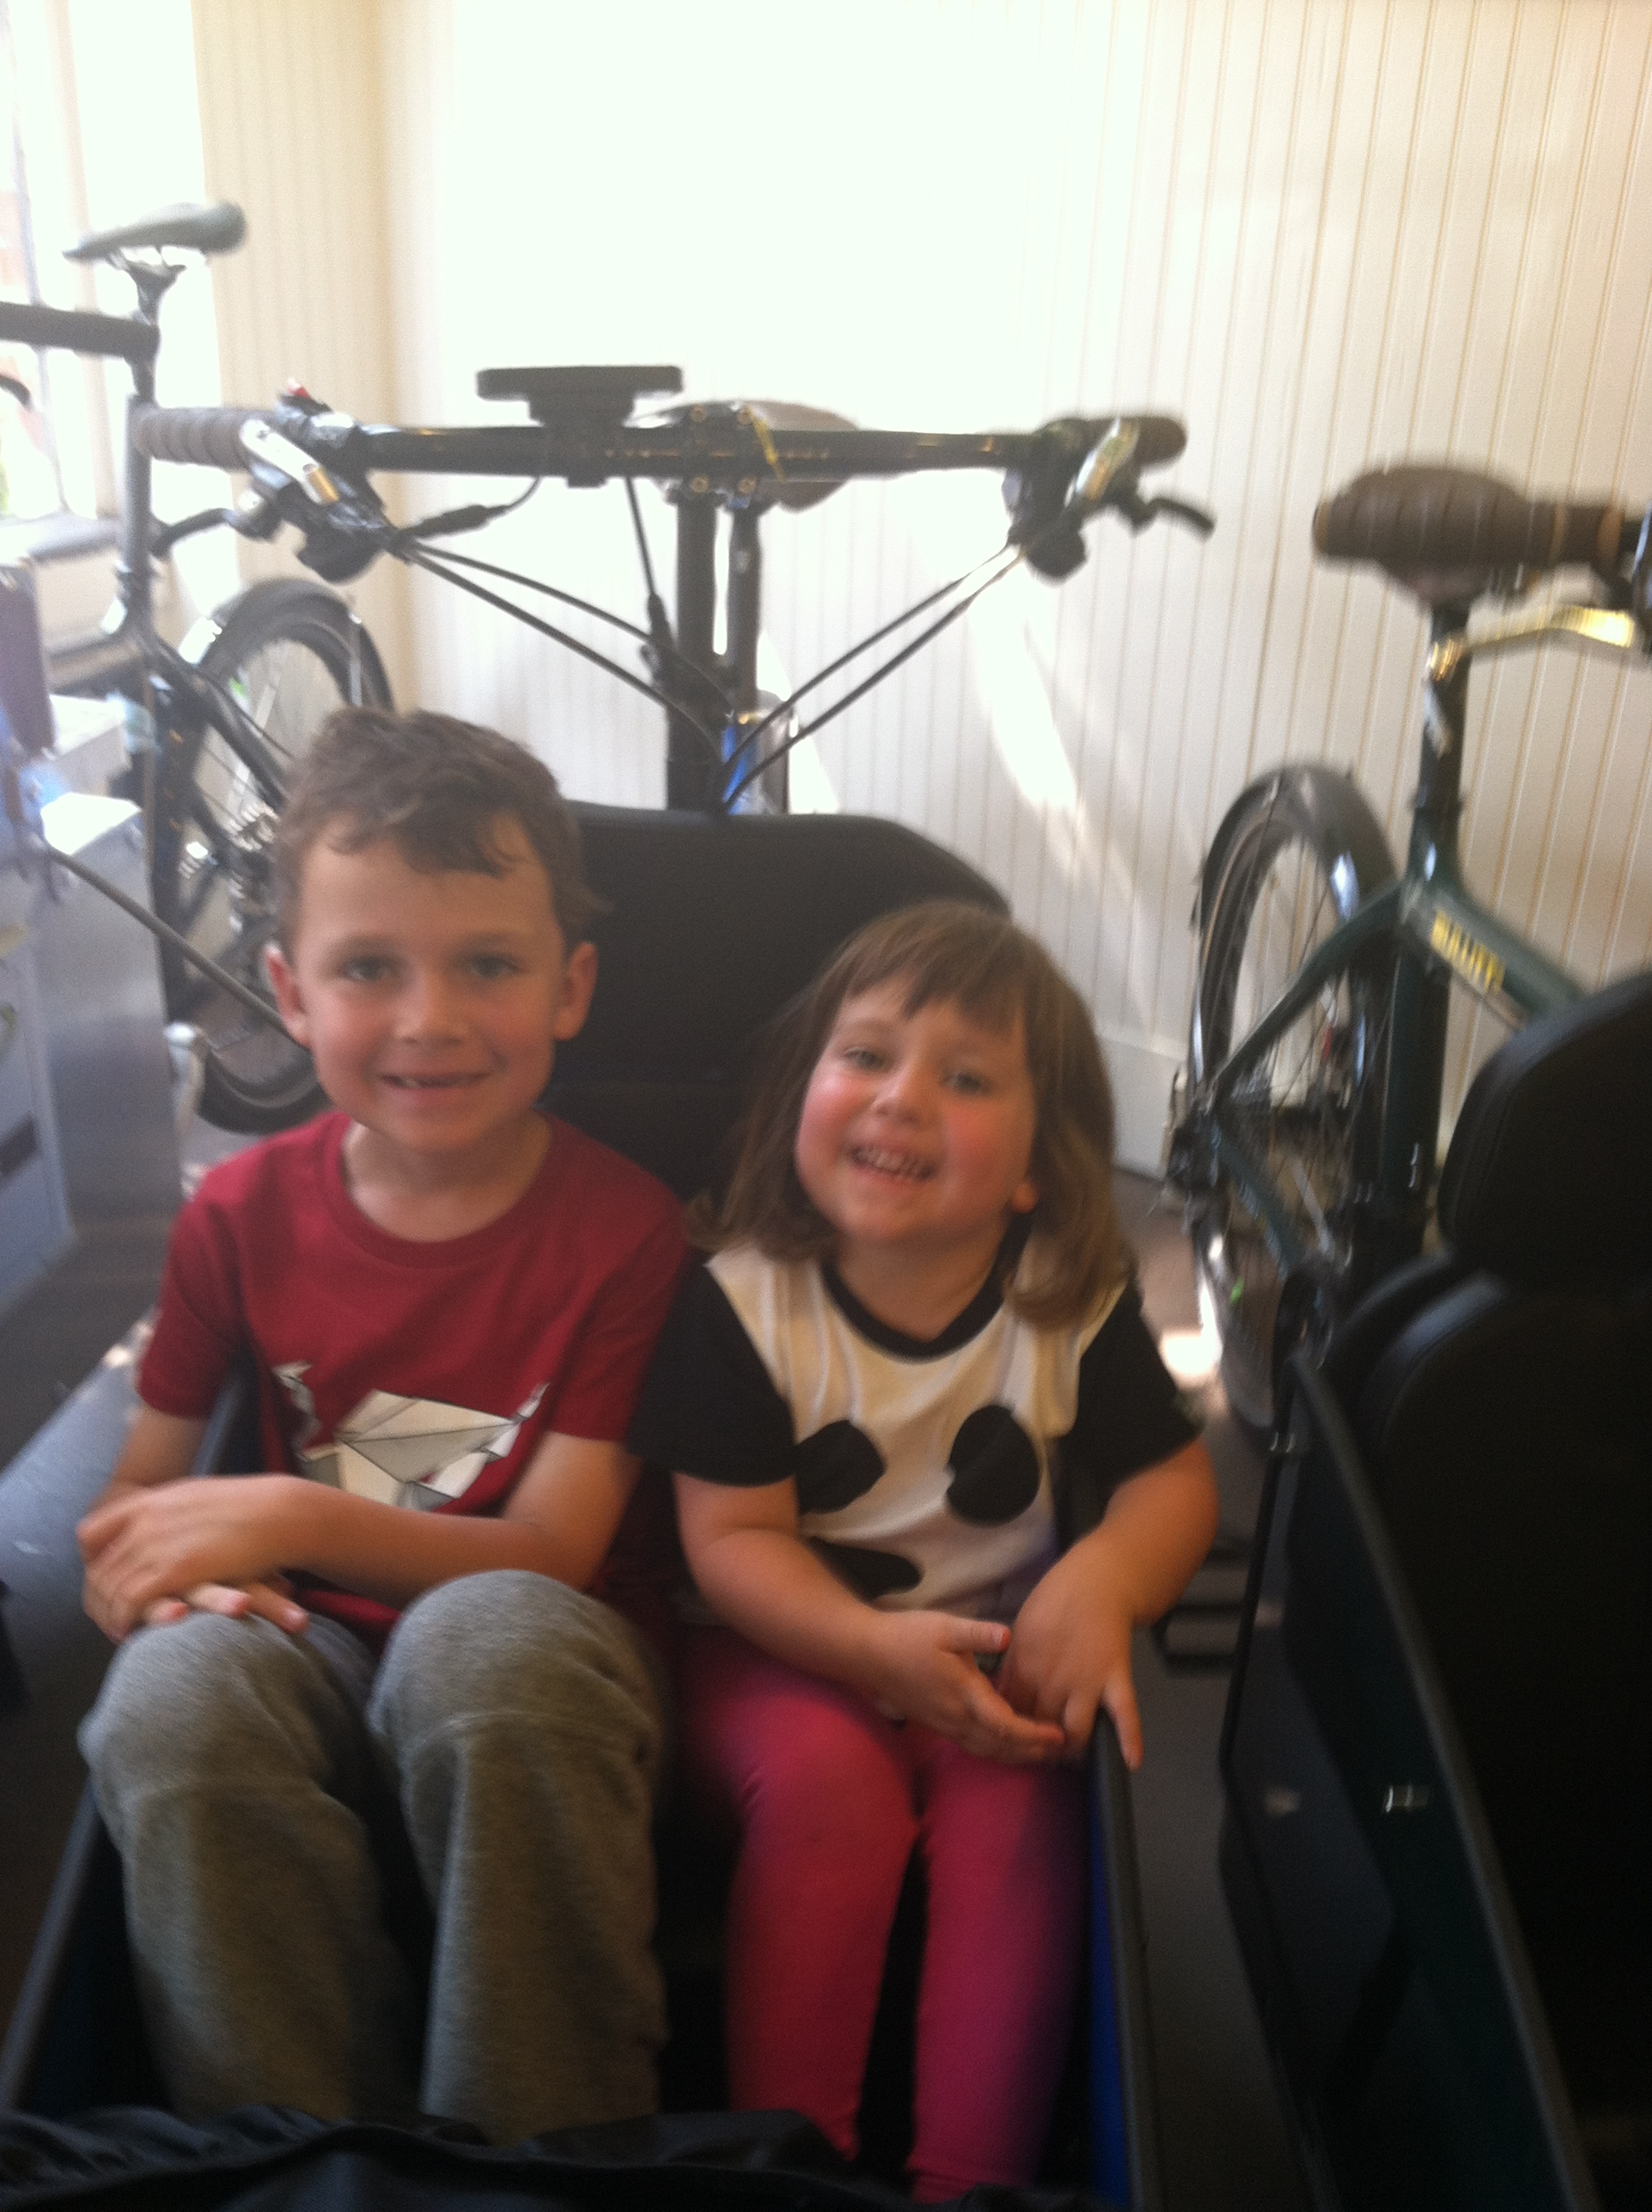 Even last summer when we rented the Bullitt, both kids were sometimes  willing to ride